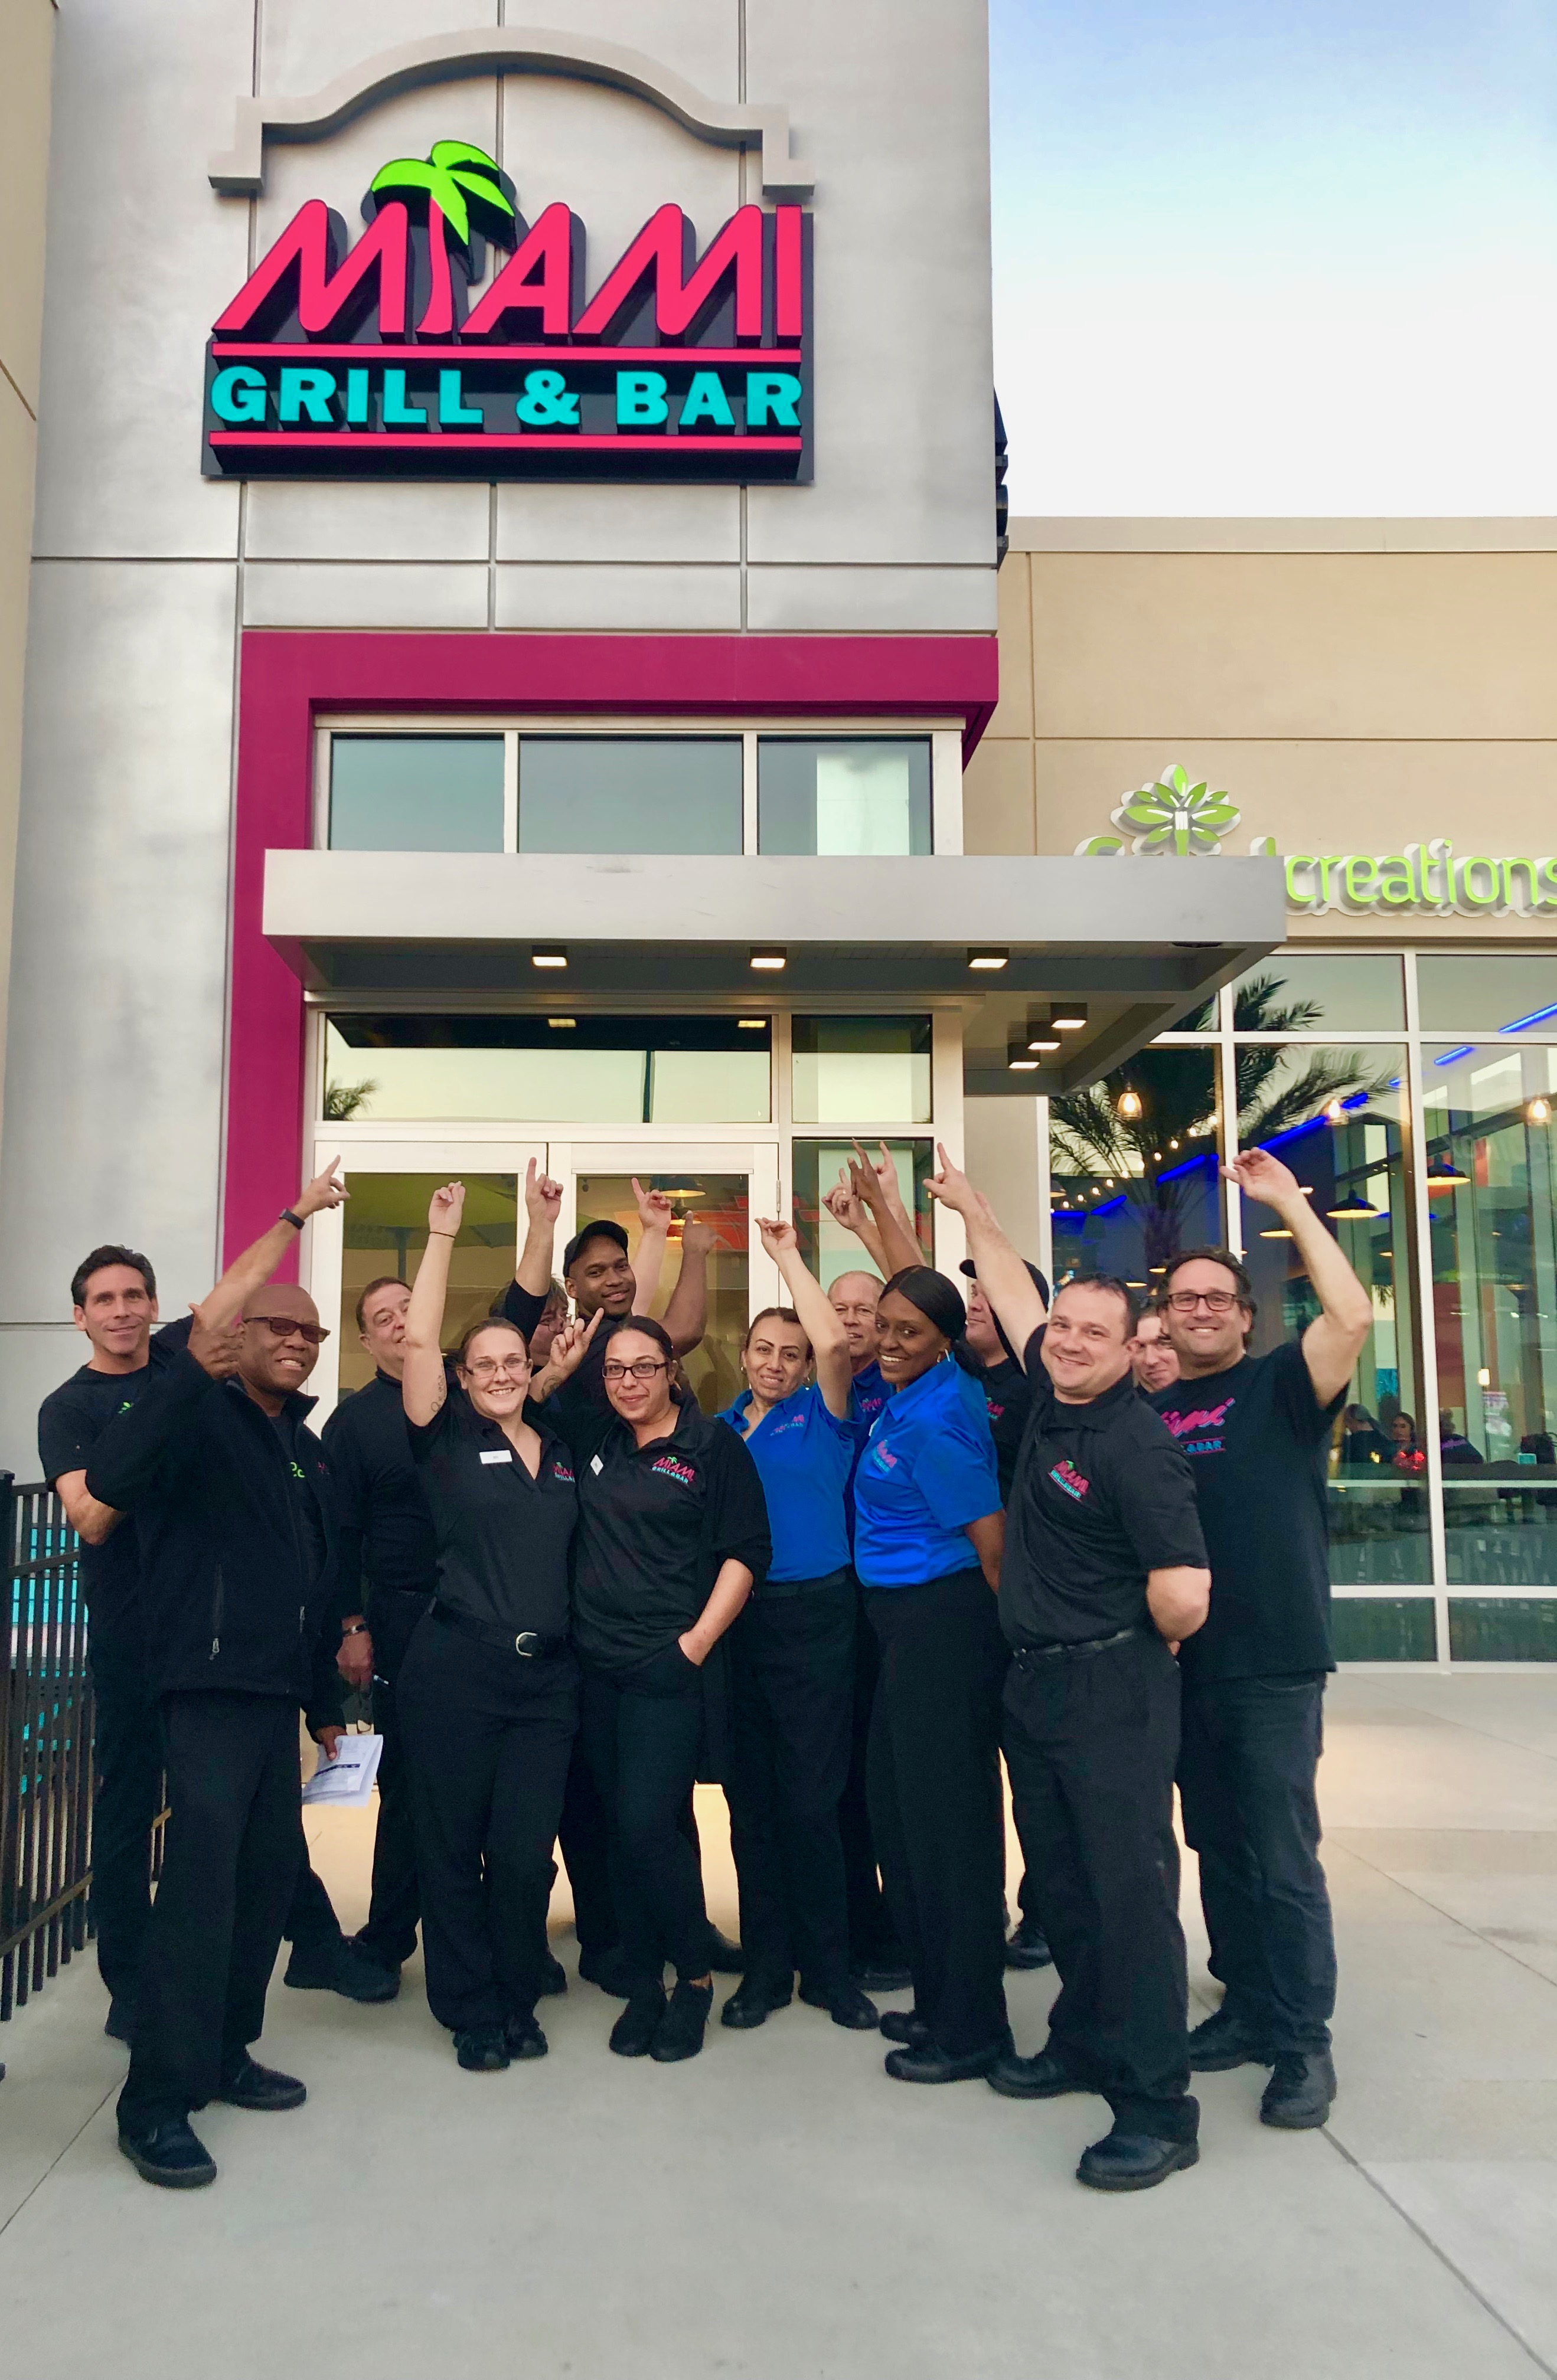 miami grill® & bar officially opens at one daytona | newswire